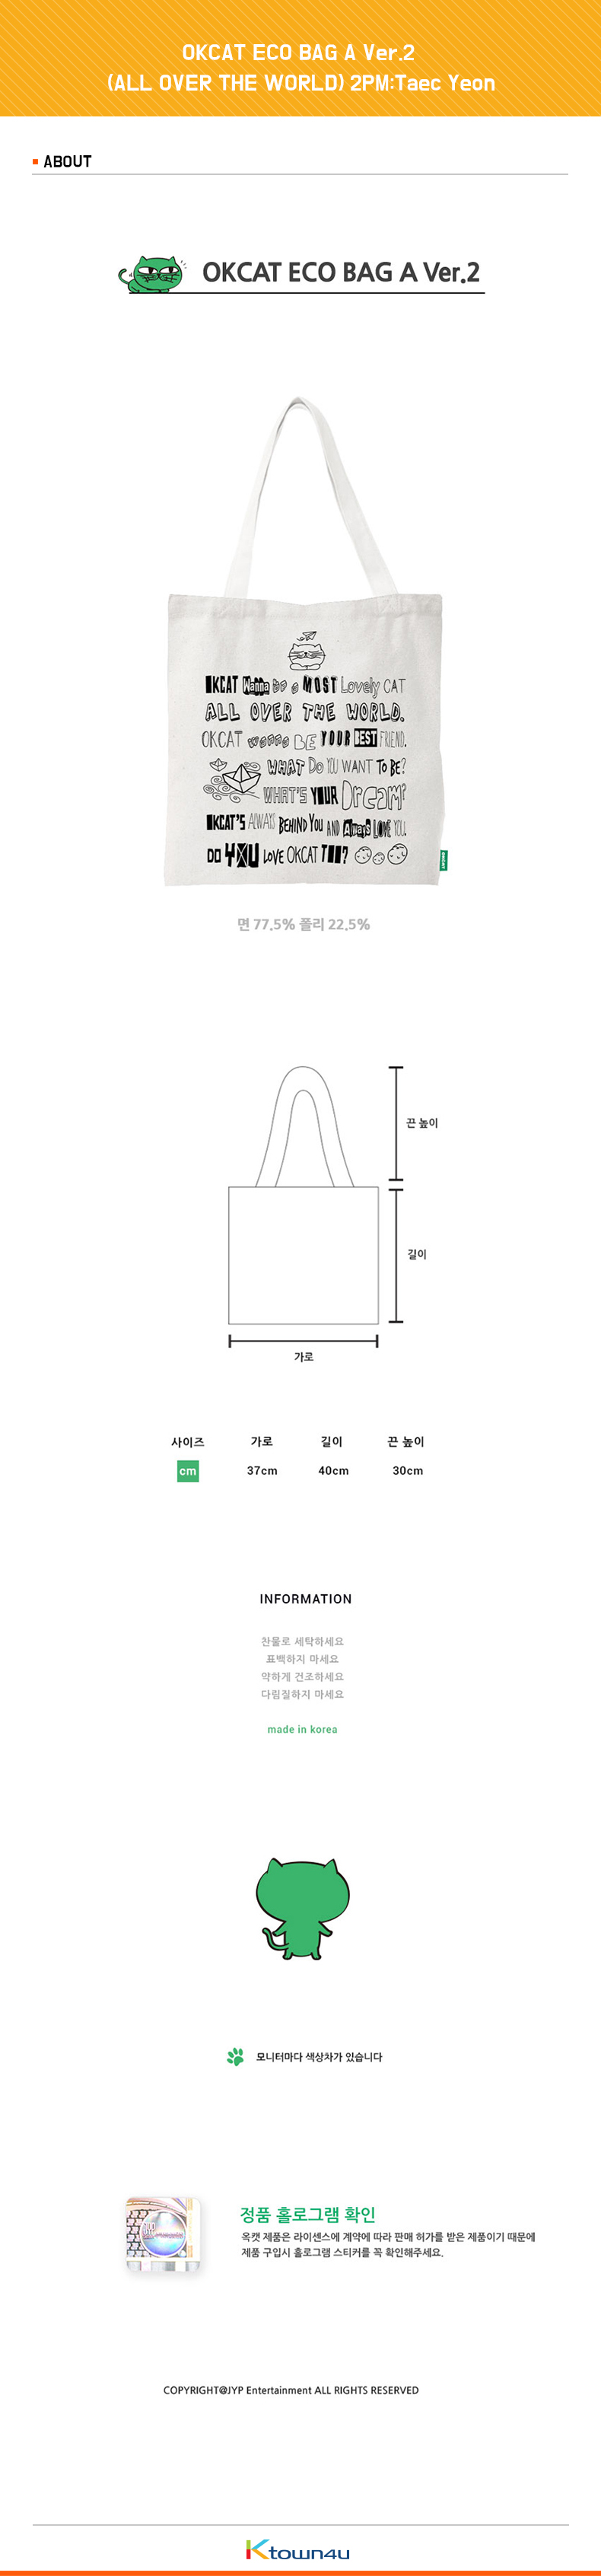 OKCAT ECO BAG A Ver.2 (ALL OVER THE WORLD) 2PM:Taec Yeon